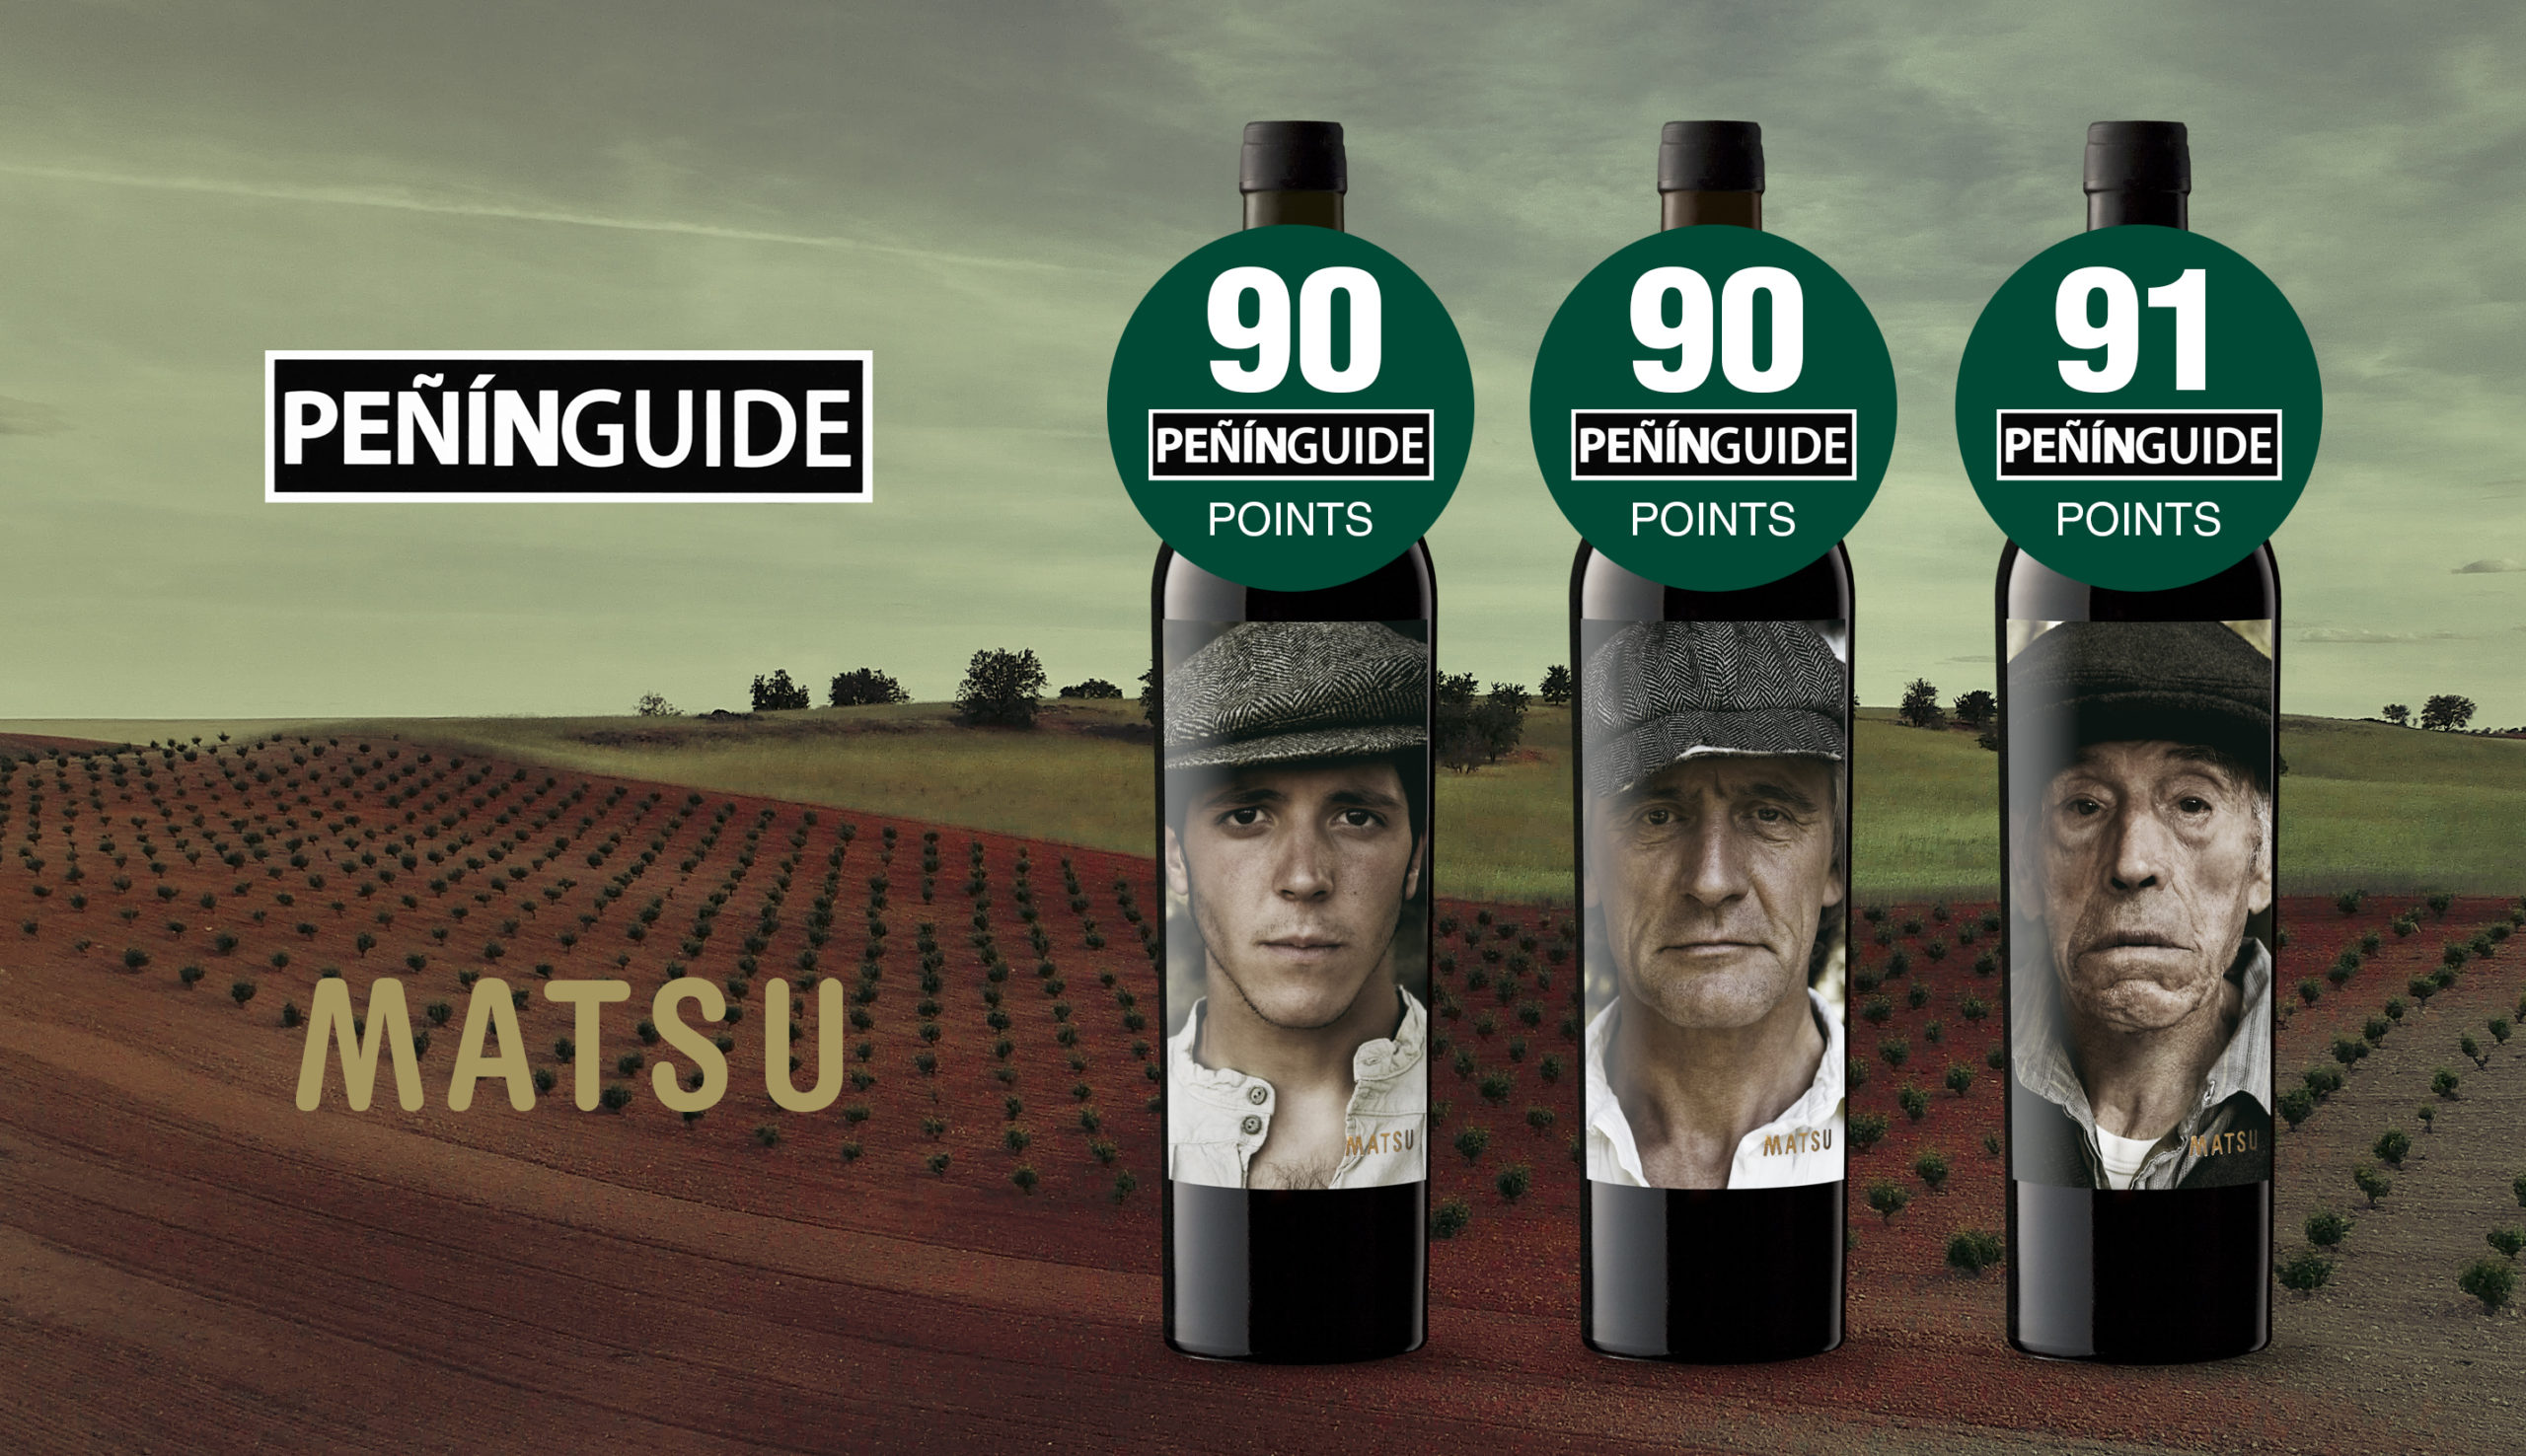 The three wines from Bodega Matsu achieve 90 or more points in the Peñín Guide